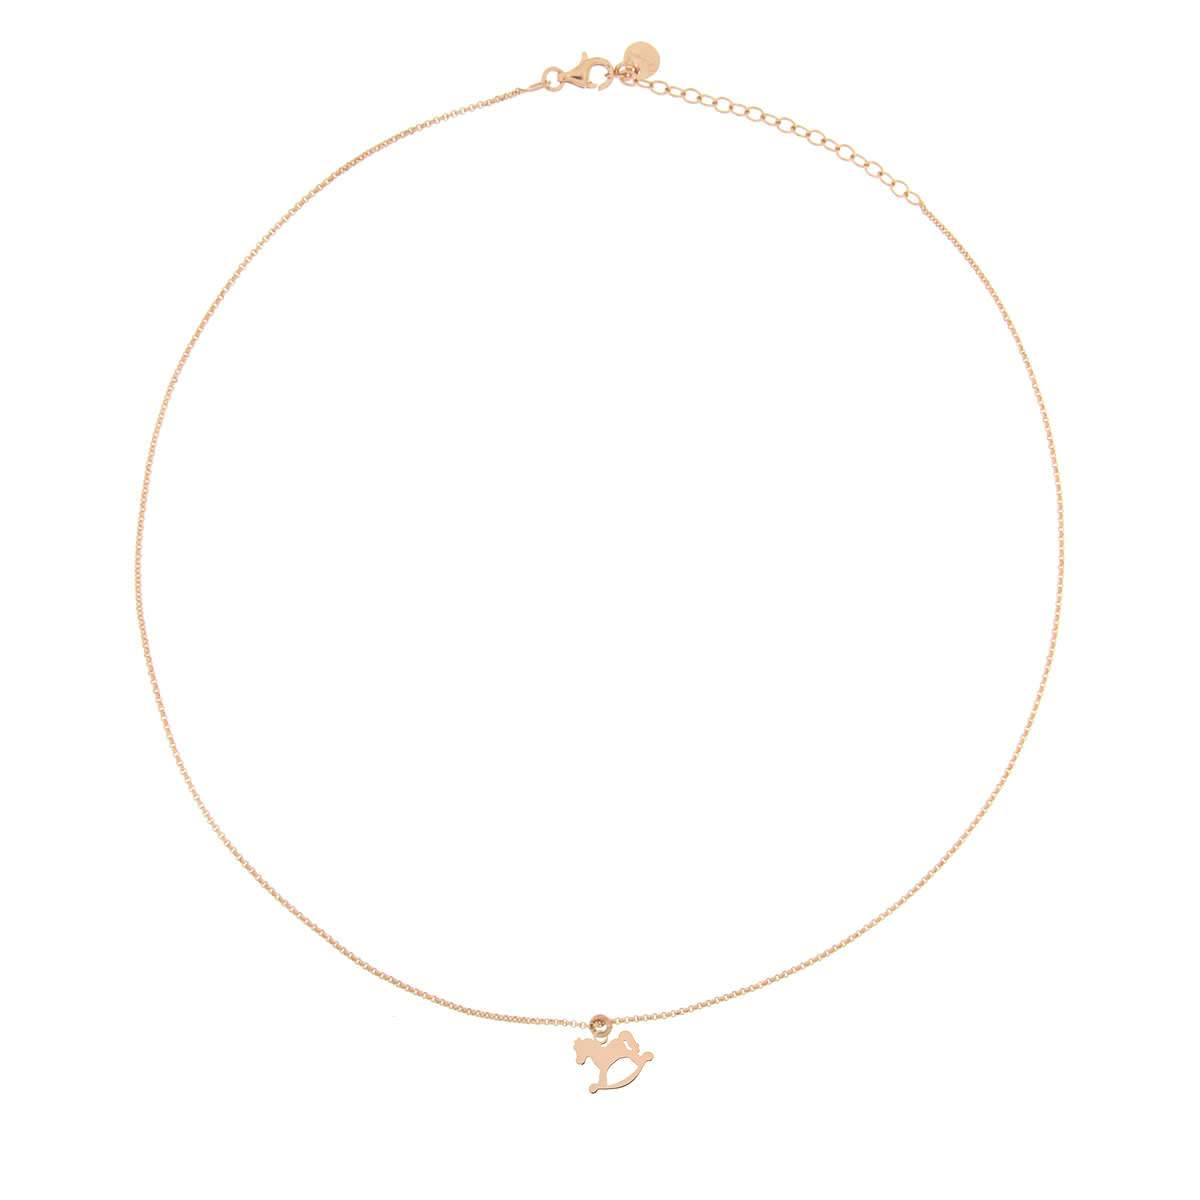 Chokers - Choker 1 Micro Subject - Horse - 1 | Rue des Mille